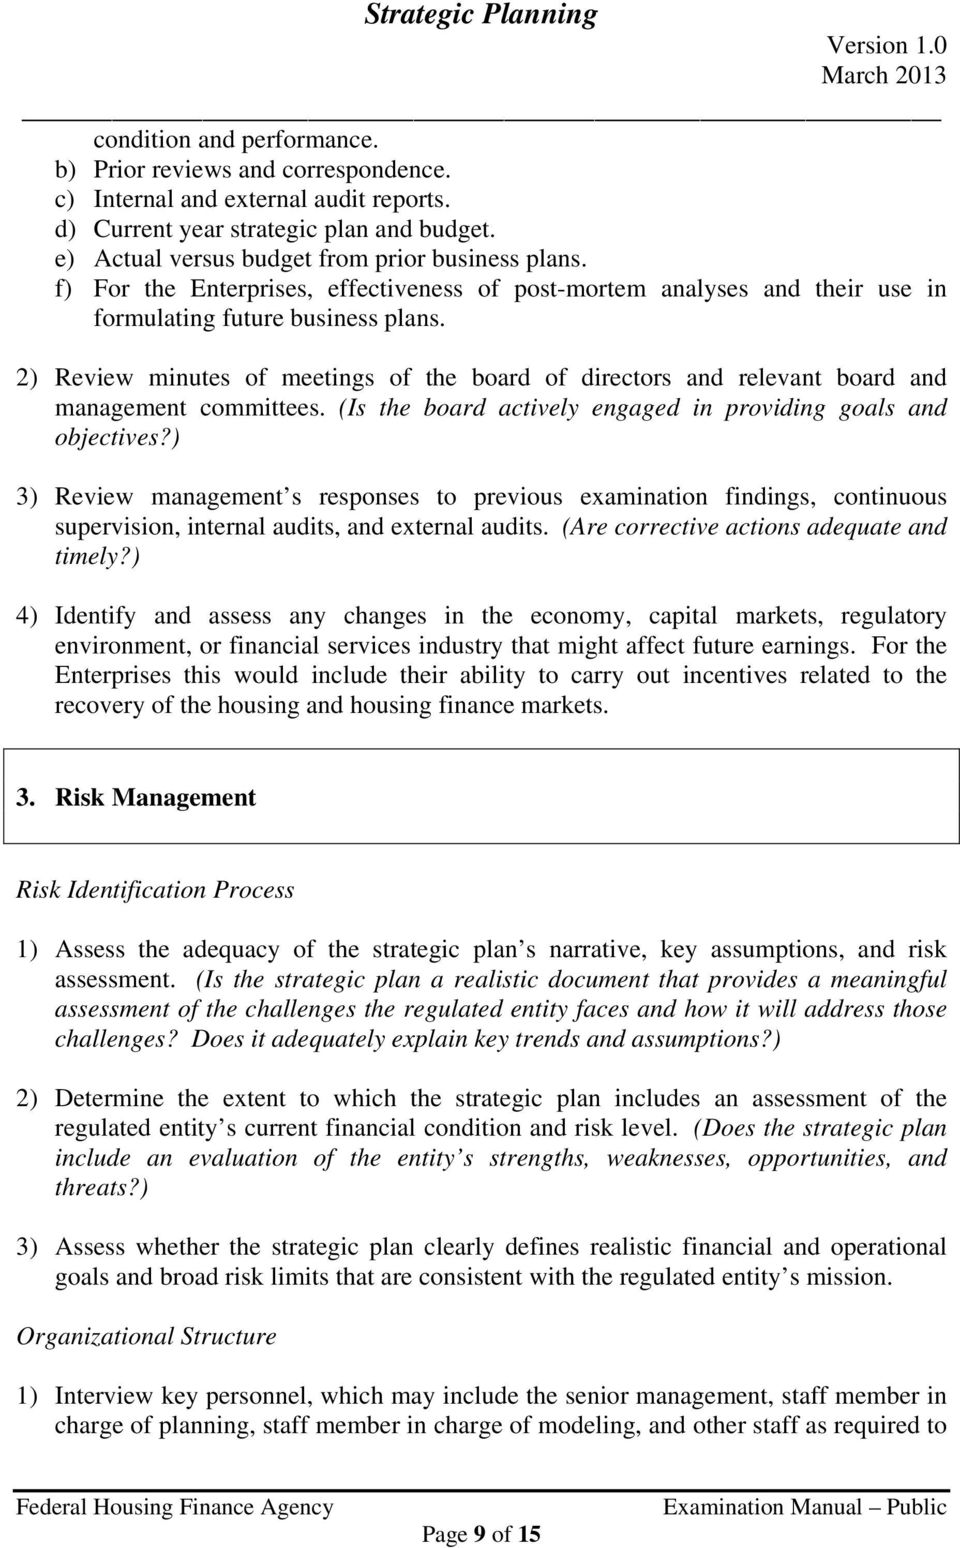 2) Review minutes of meetings of the board of directors and relevant board and management committees. (Is the board actively engaged in providing goals and objectives?